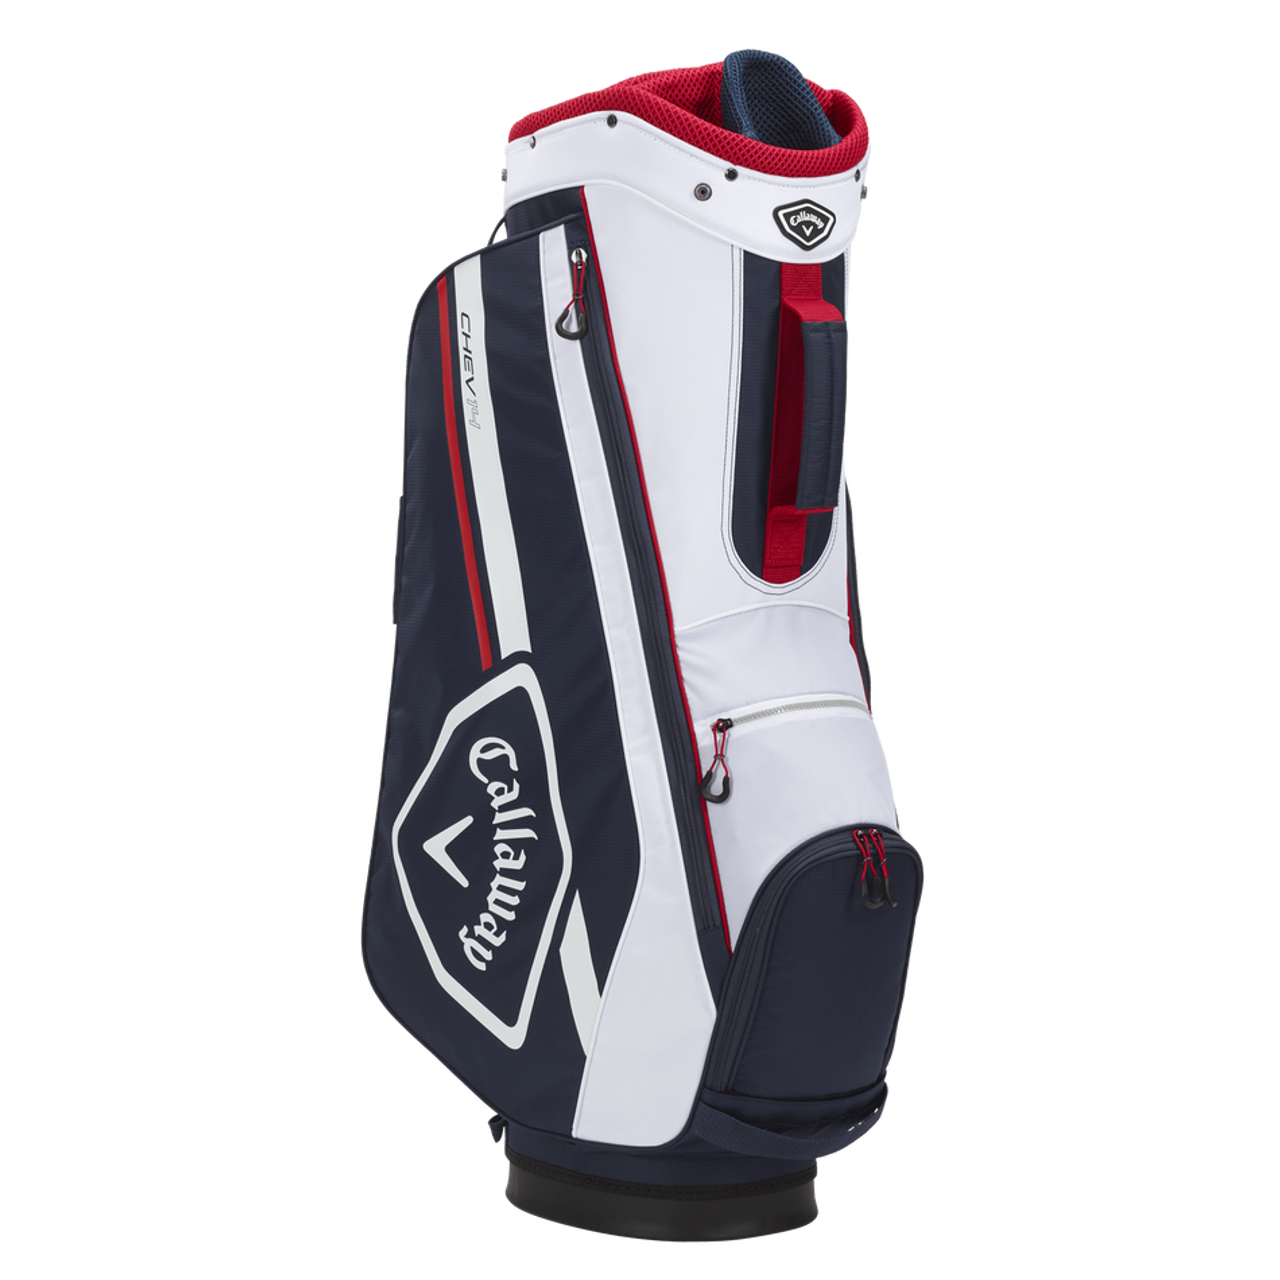 Callaway Chev 14 Cart Bag 2021 - Navy / White / Red